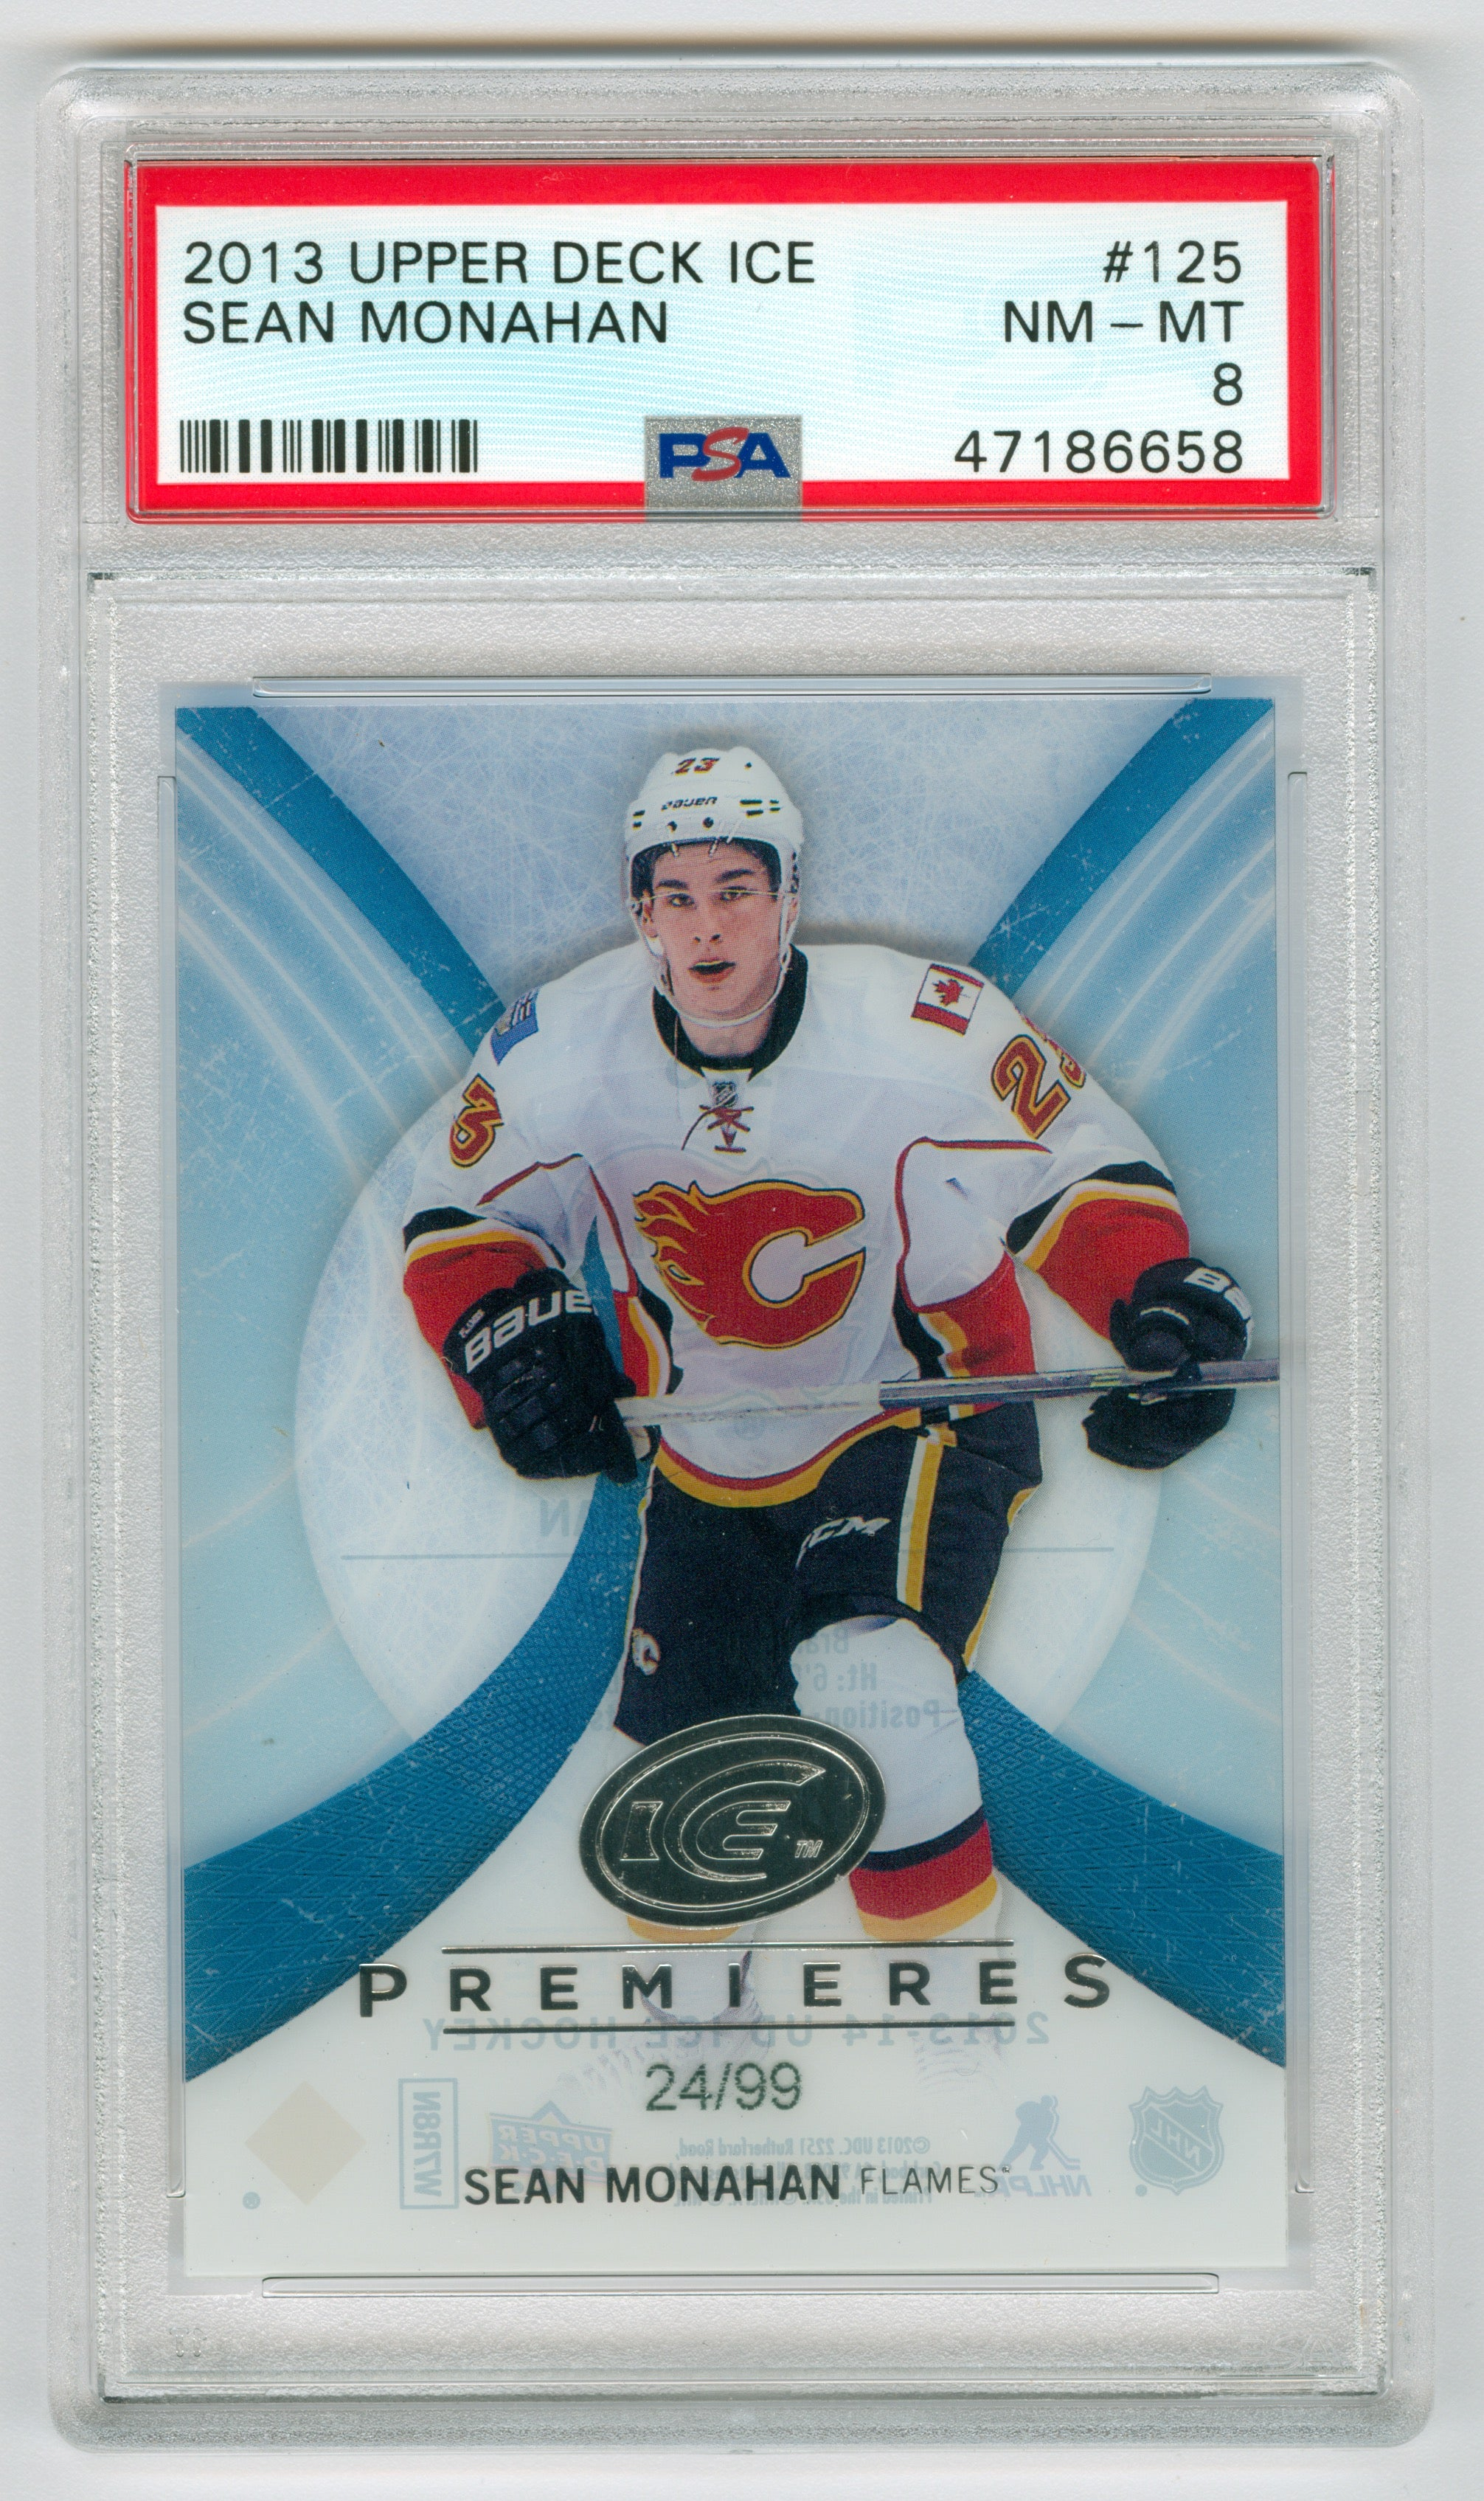 2013-14 Upper Deck Ice #125 Sean Monahan #24/99 PSA 8 | Eastridge Sports Cards